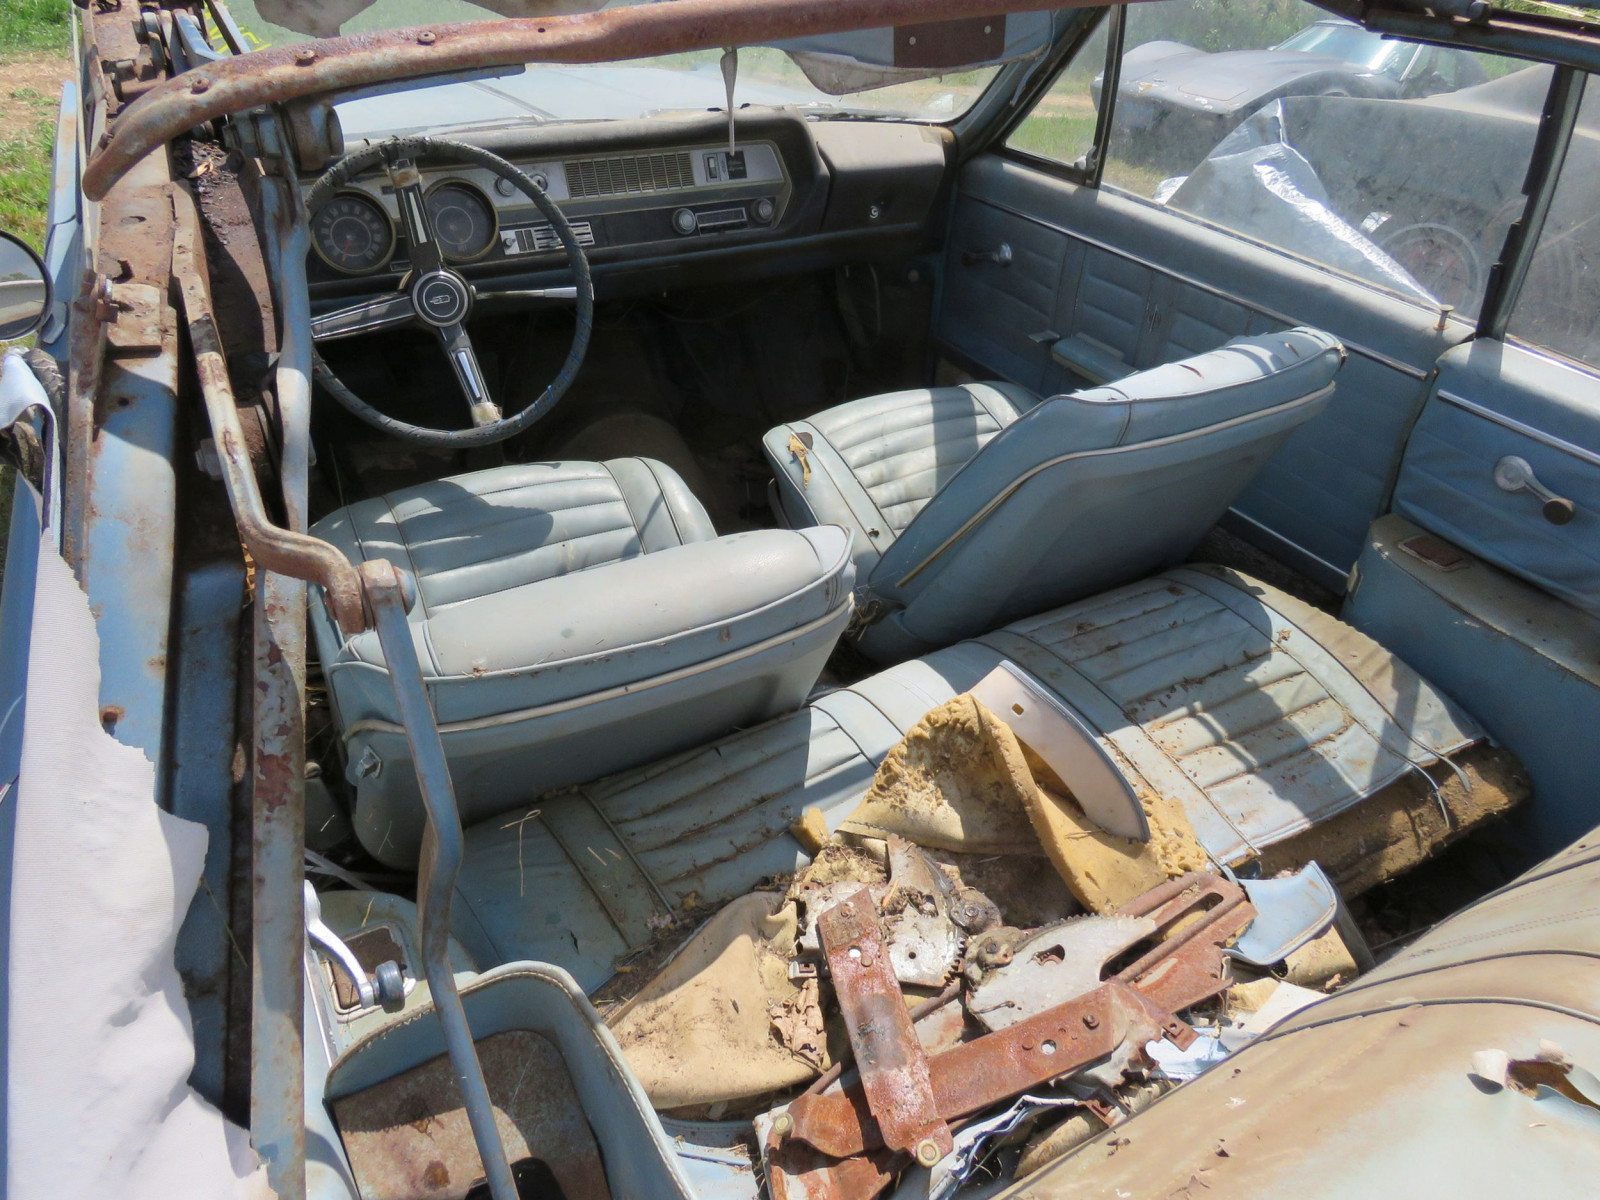 1967 Oldsmobile Cutlas Convertible Parts Car - Image 7